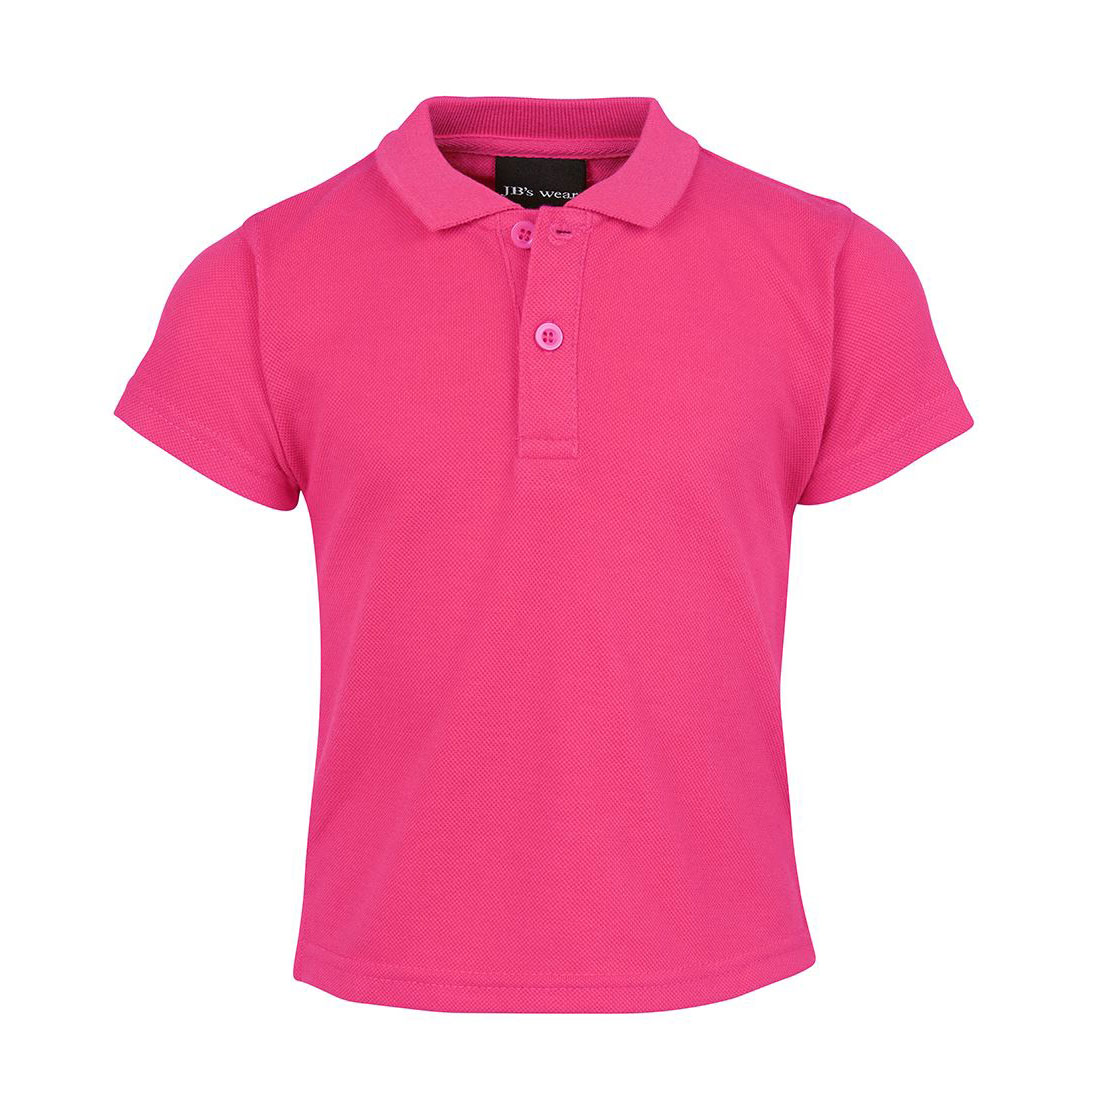 The Old Navy toddler & baby polo shirts assortment has great additions for any wardrobe. Mix and match our fashionable polo shirts for toddlers options to create a look that is all your own.